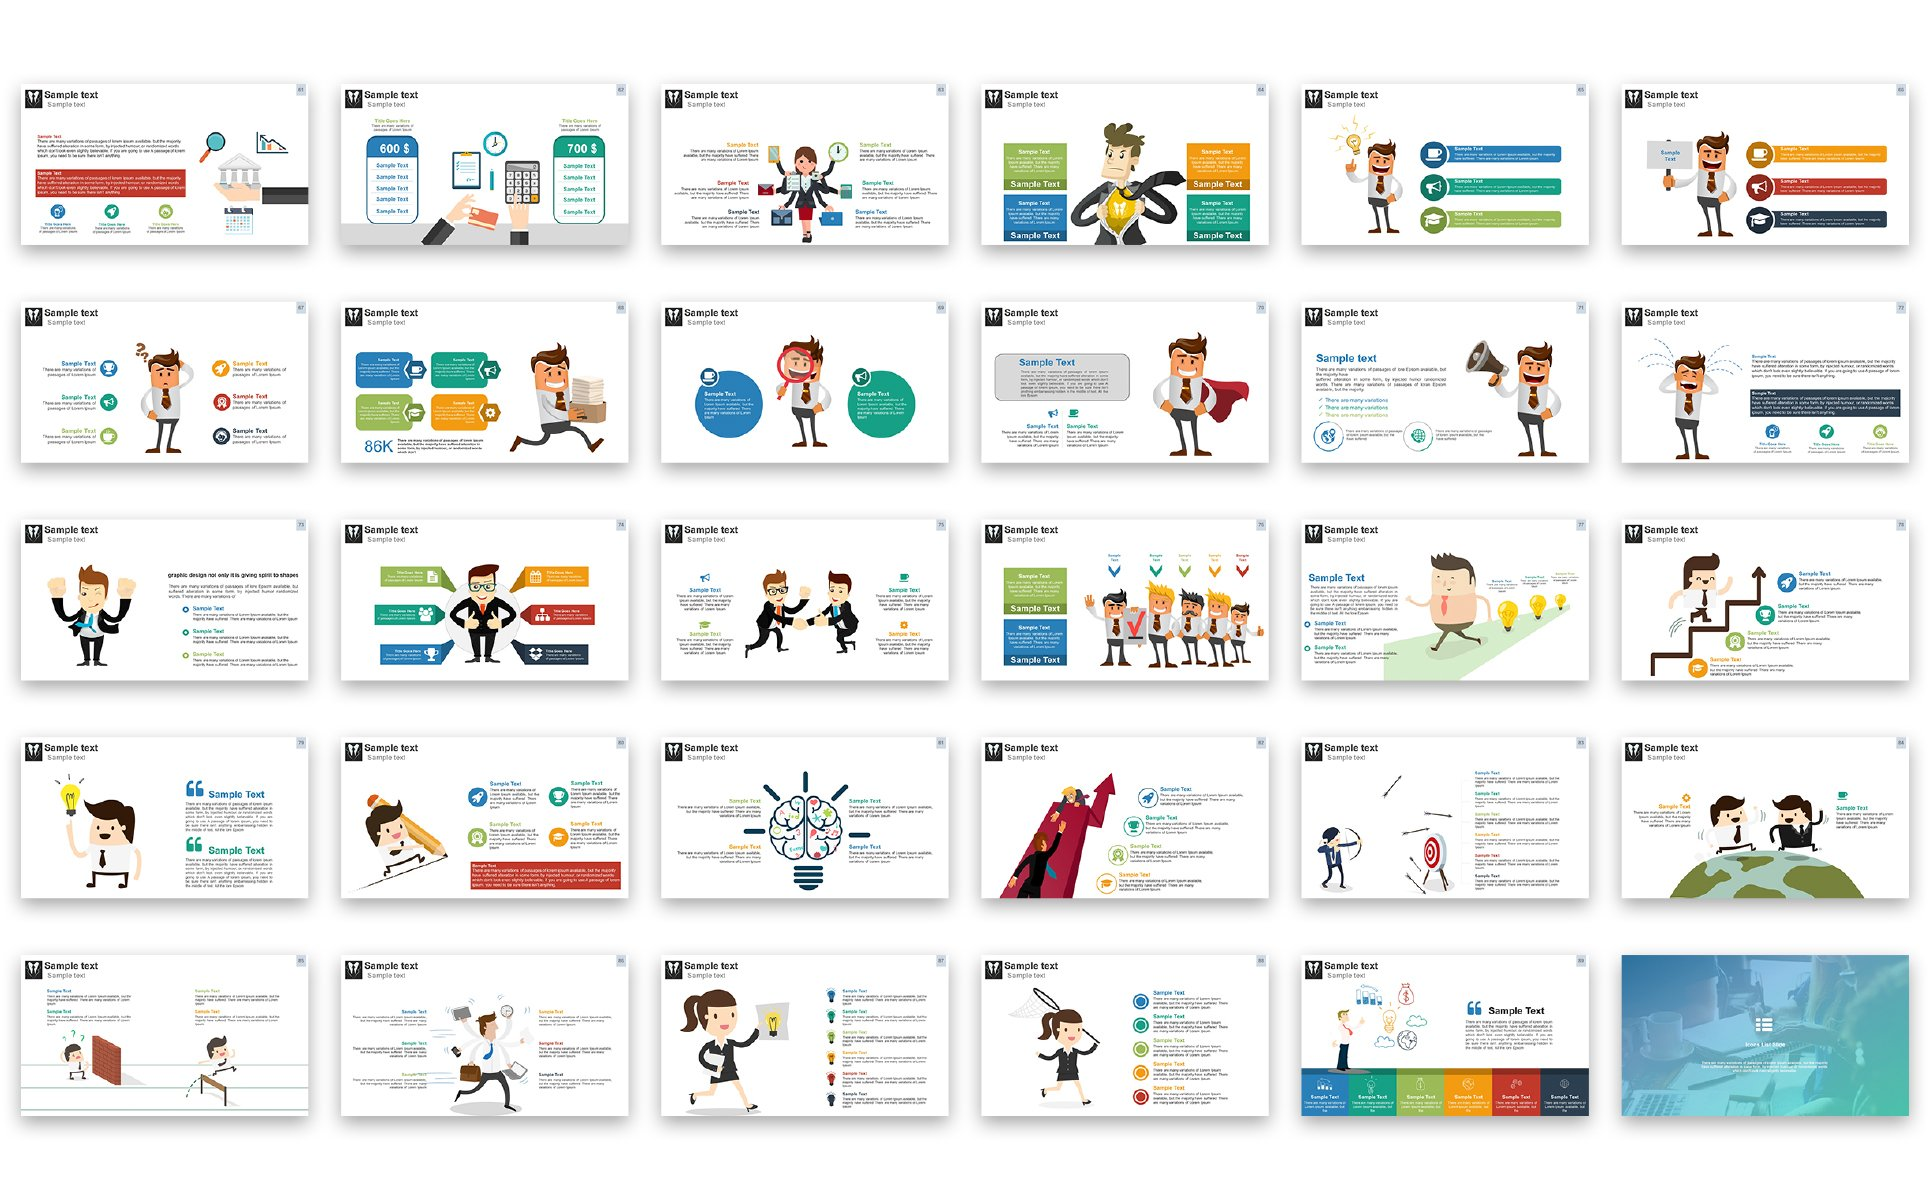 Business presentation powerpoint template 67451 business presentation powerpoint template big screenshot cheaphphosting